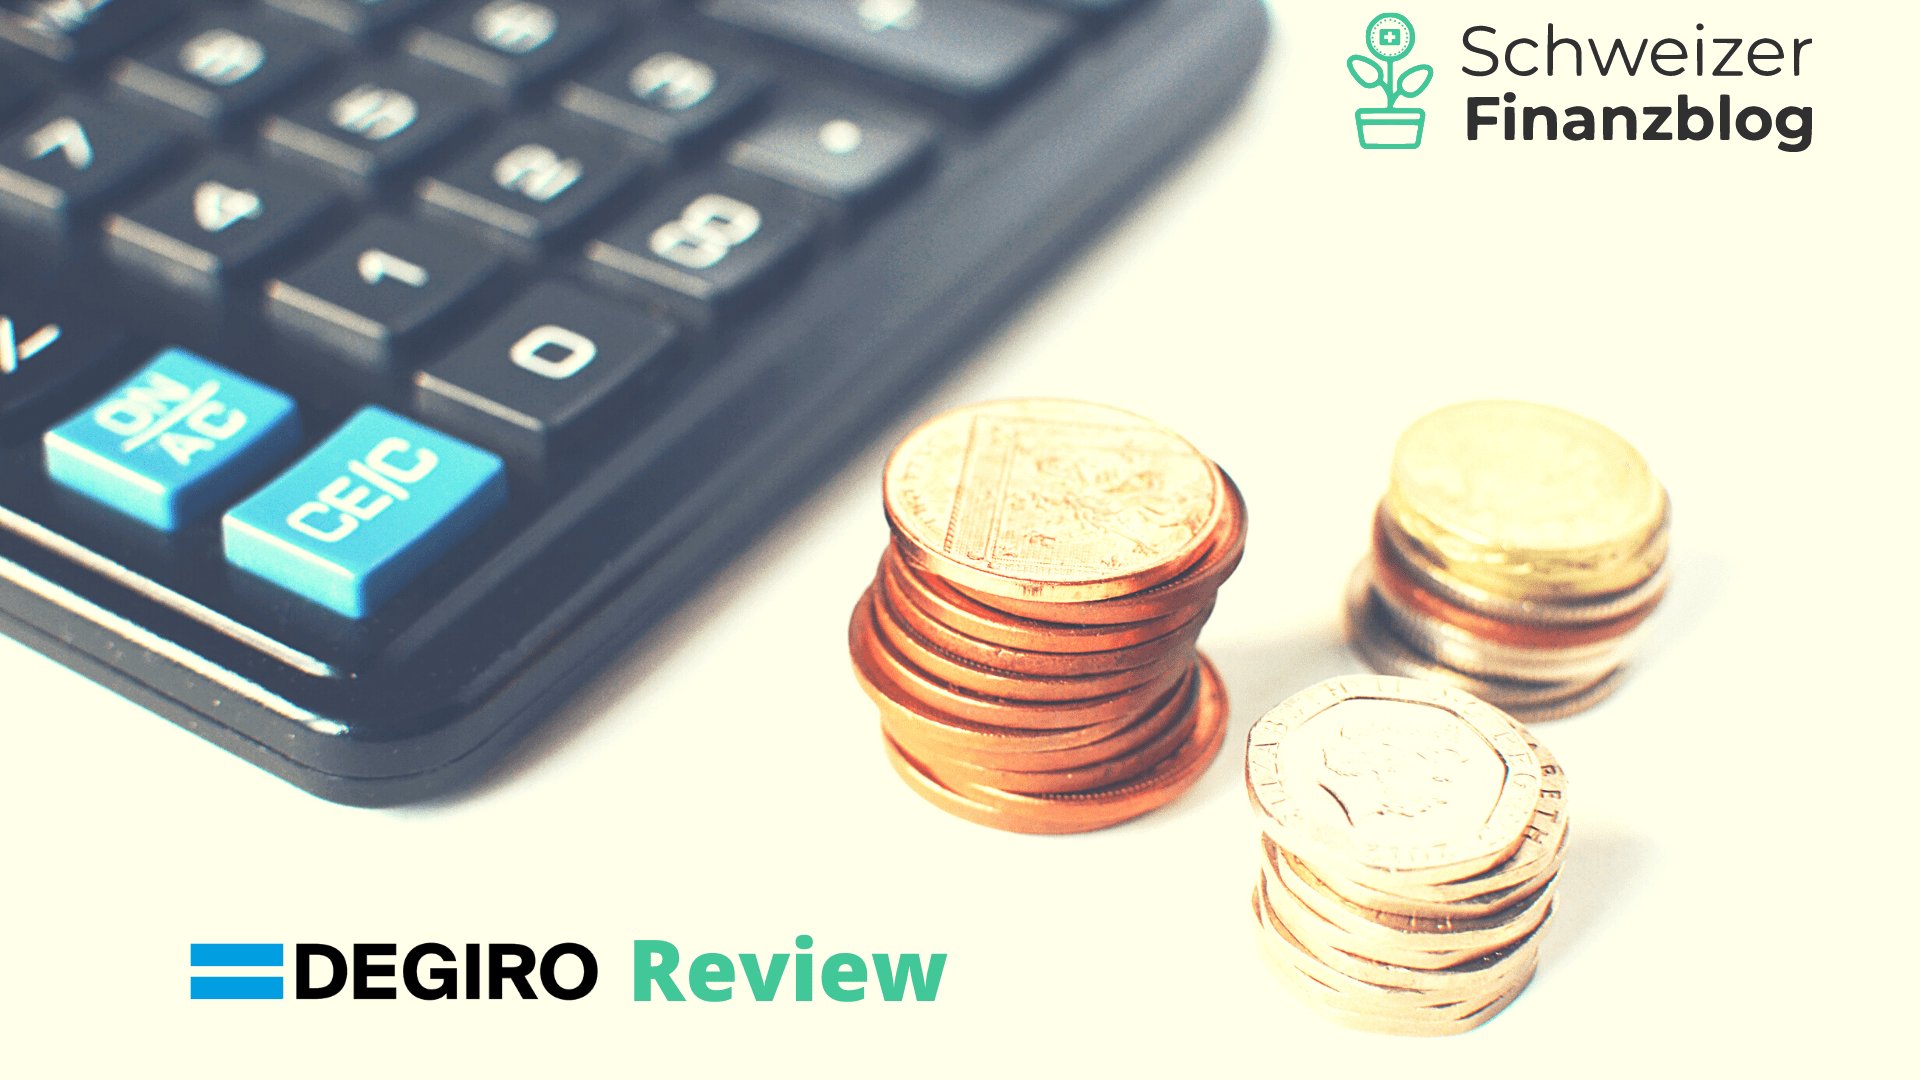 DEGIRO REVIEW - ETF SPARPLAN SCHWEIZ